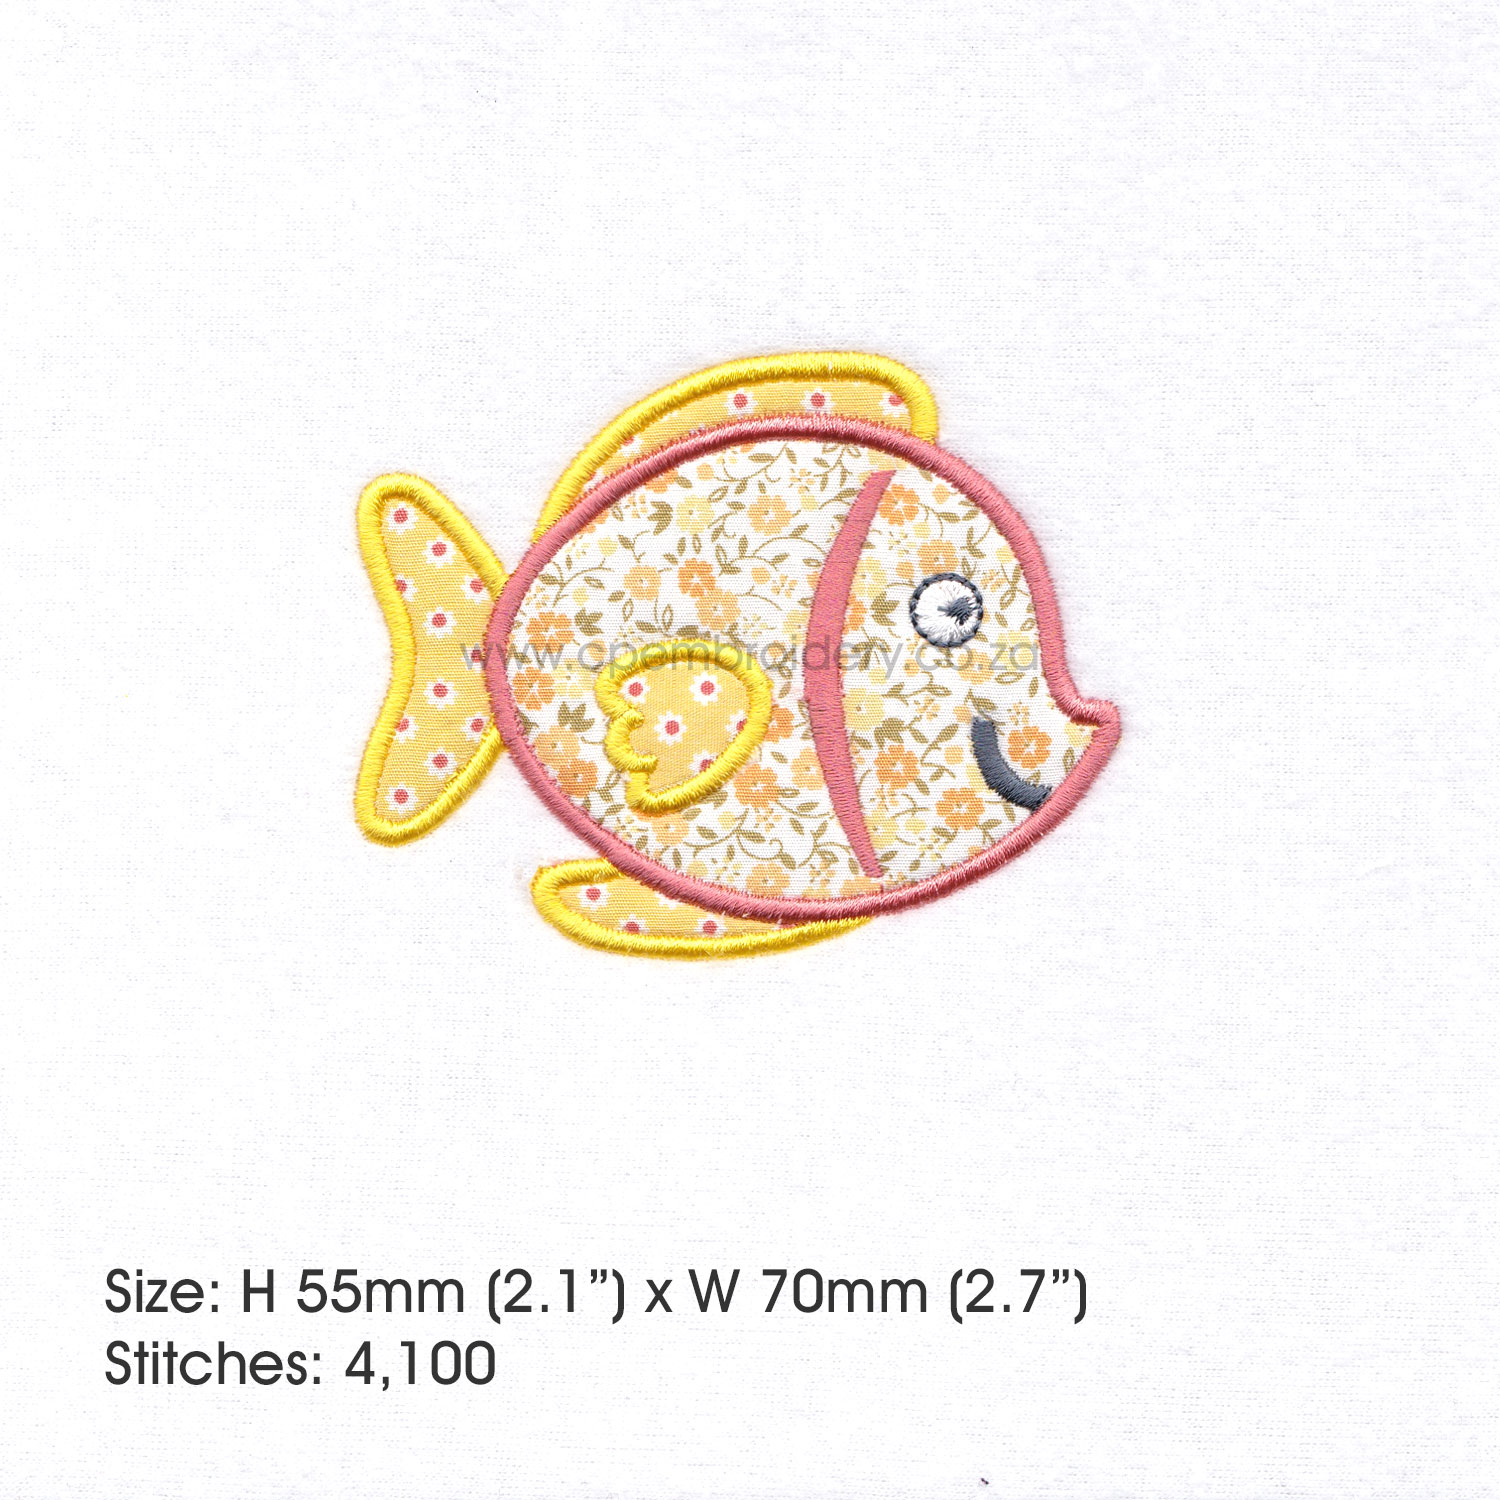 Yellow Tang Pet Fish Applique Machine Embroidery Design example image 2